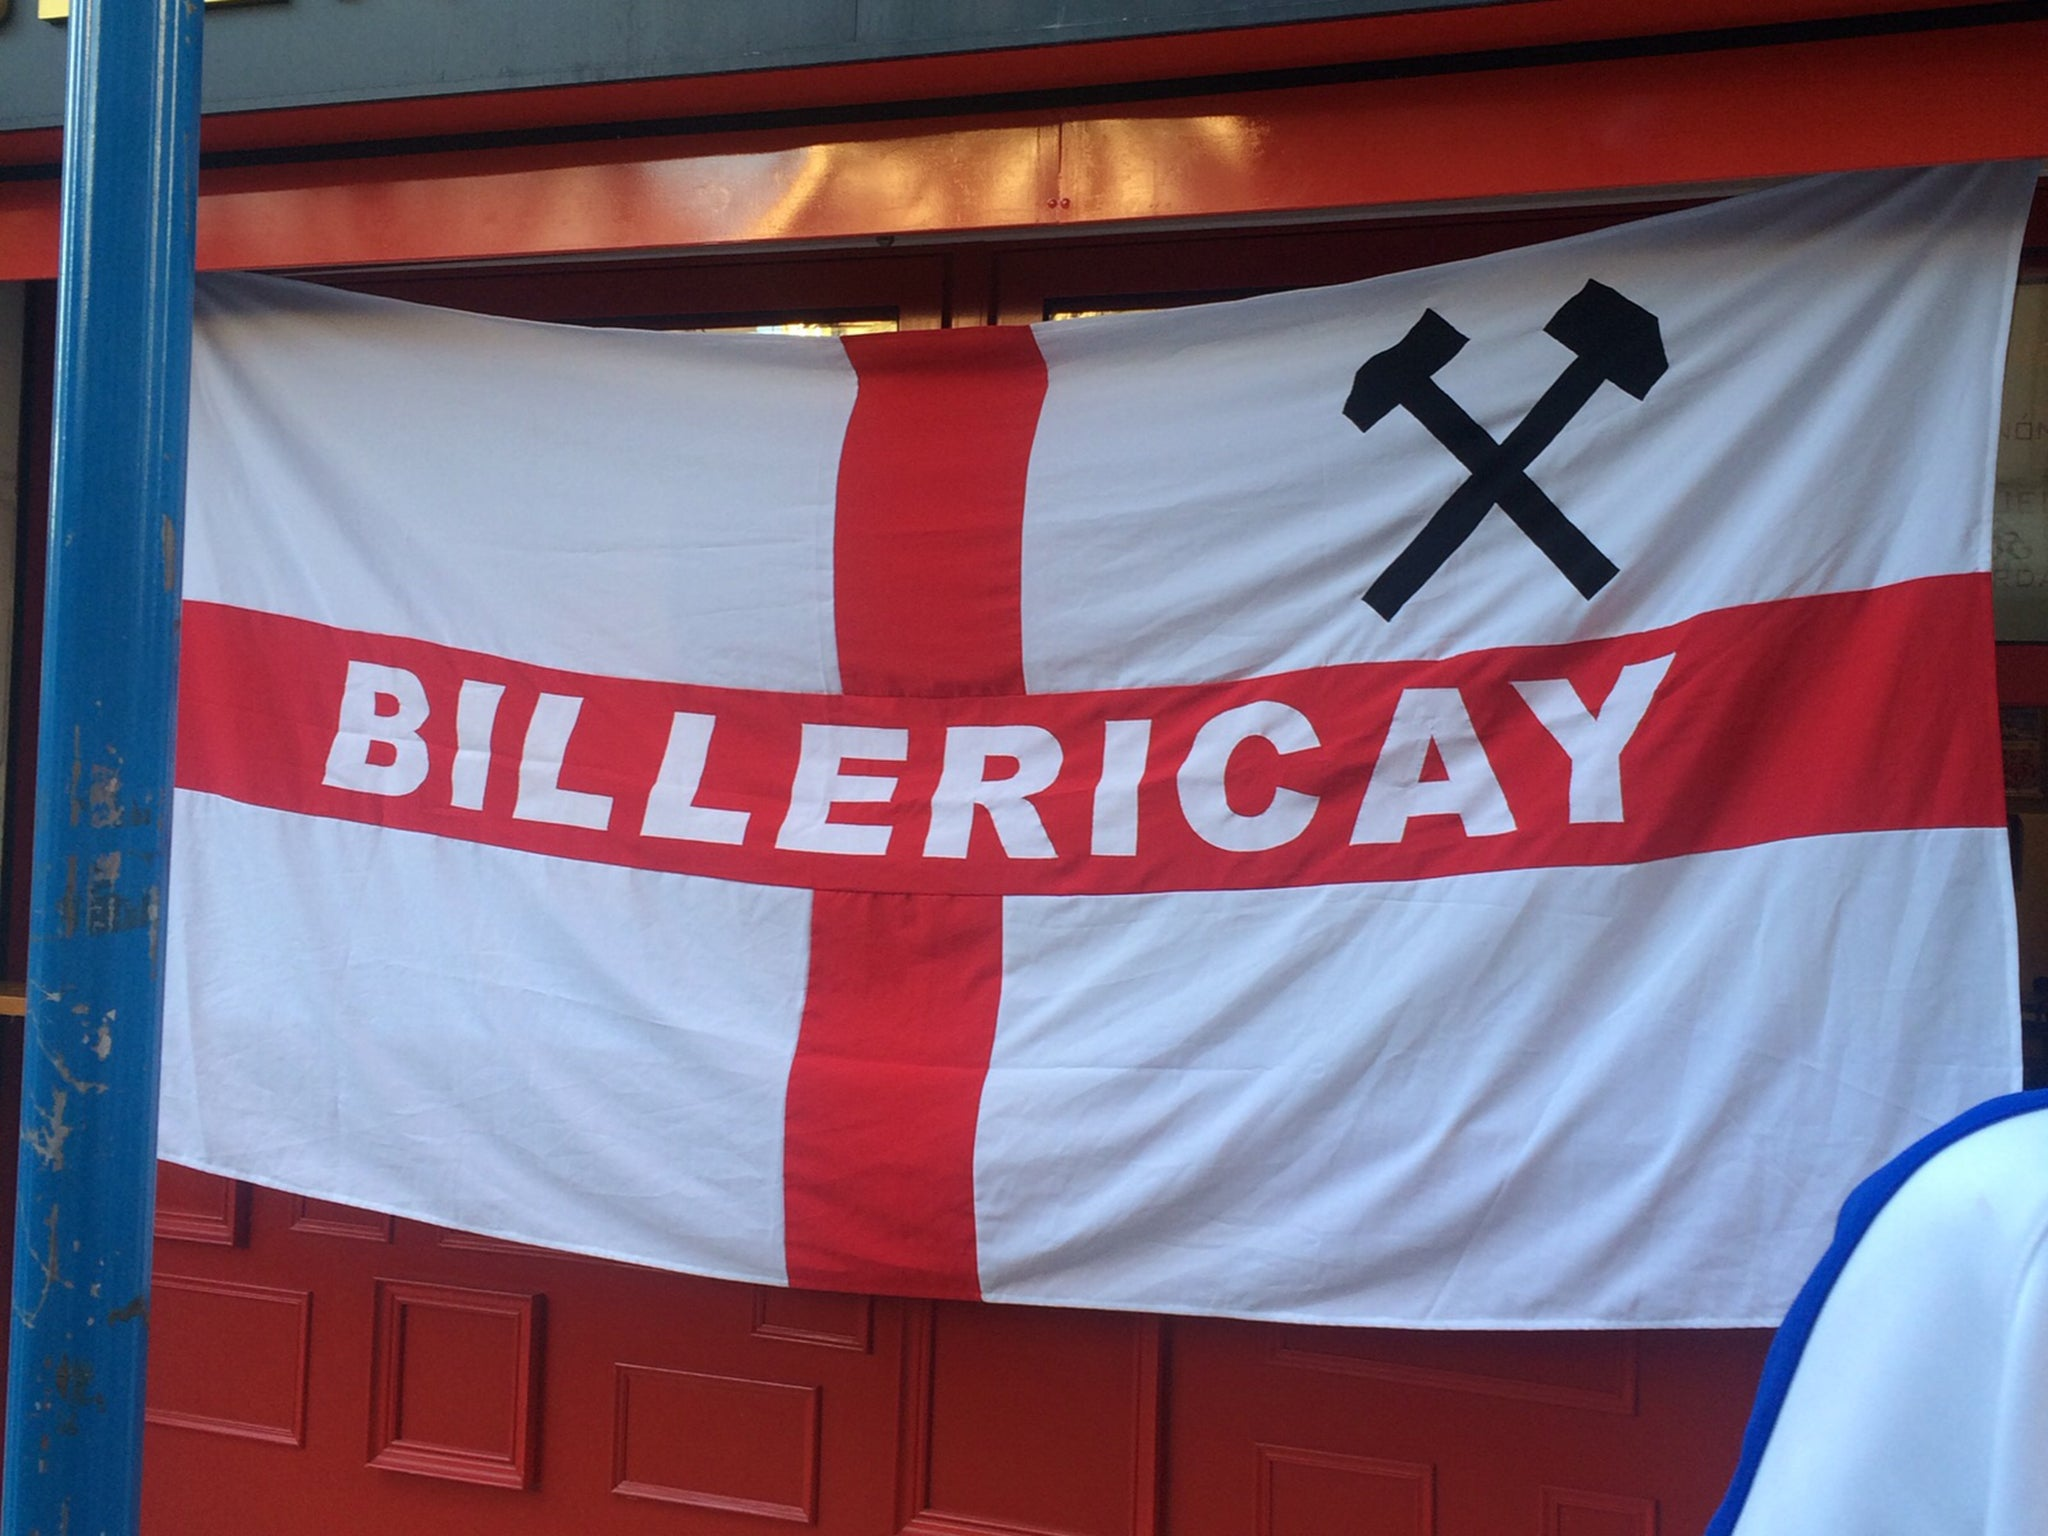 west ham fans have their flag removed at england game as crossed